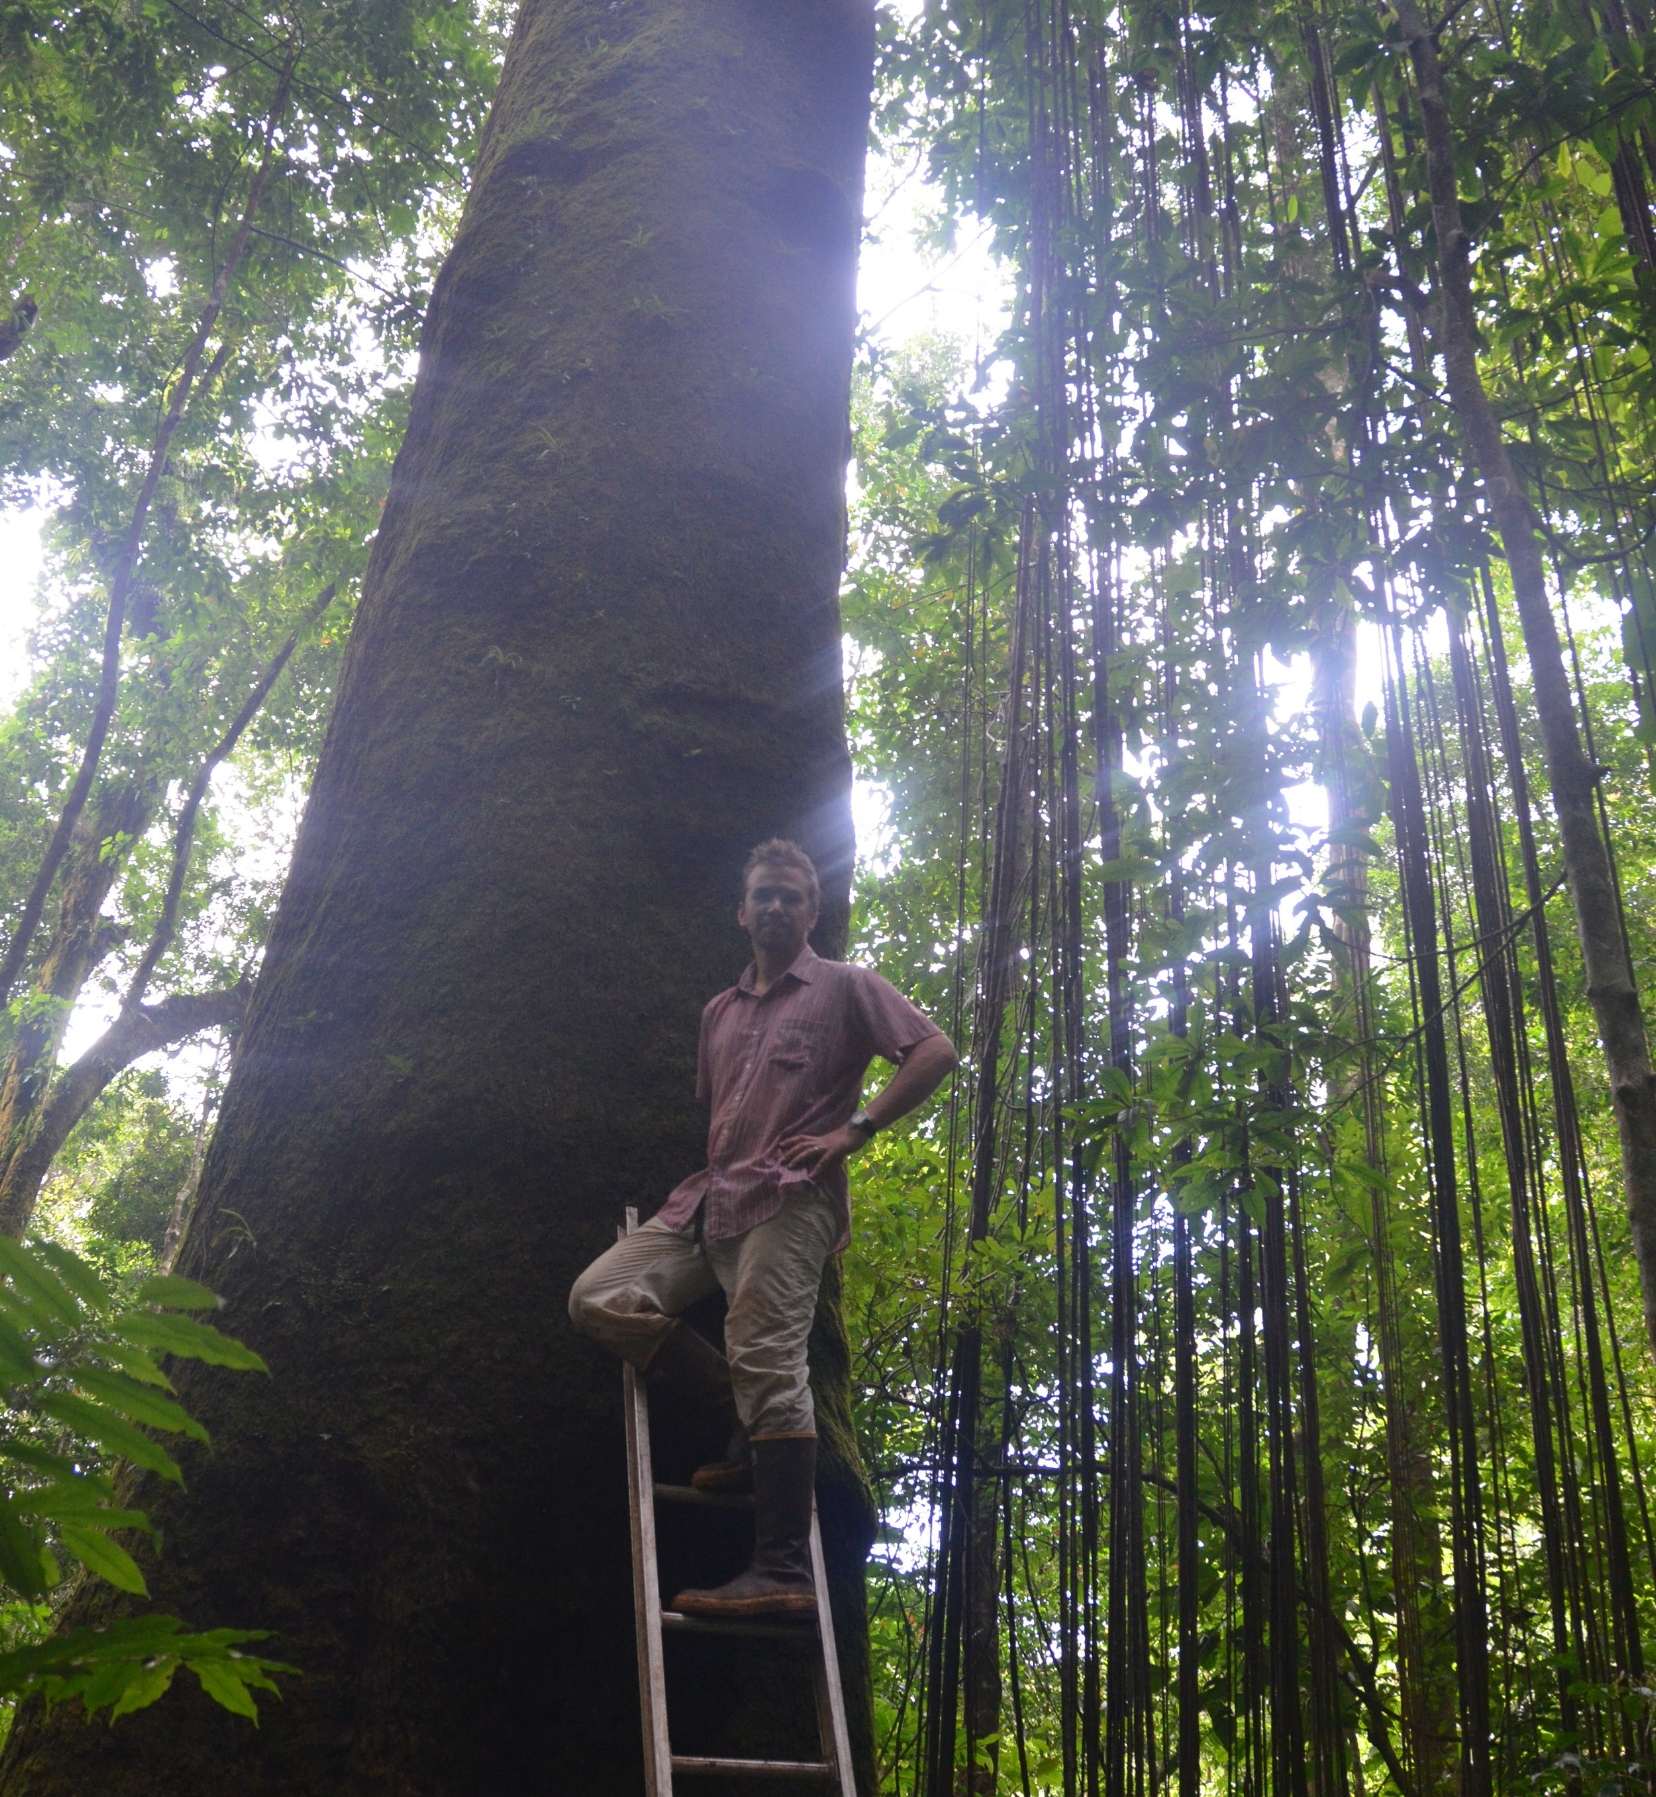 Philip Taylor measures the diameter of an Ajo tree on the Osa Peninsula, Costa Rica. The Ajo ( Caryocar costaricense ) is endemic to this region and displays remarkable stature and lifespan. It's the Sequoia of tropical rainforests.